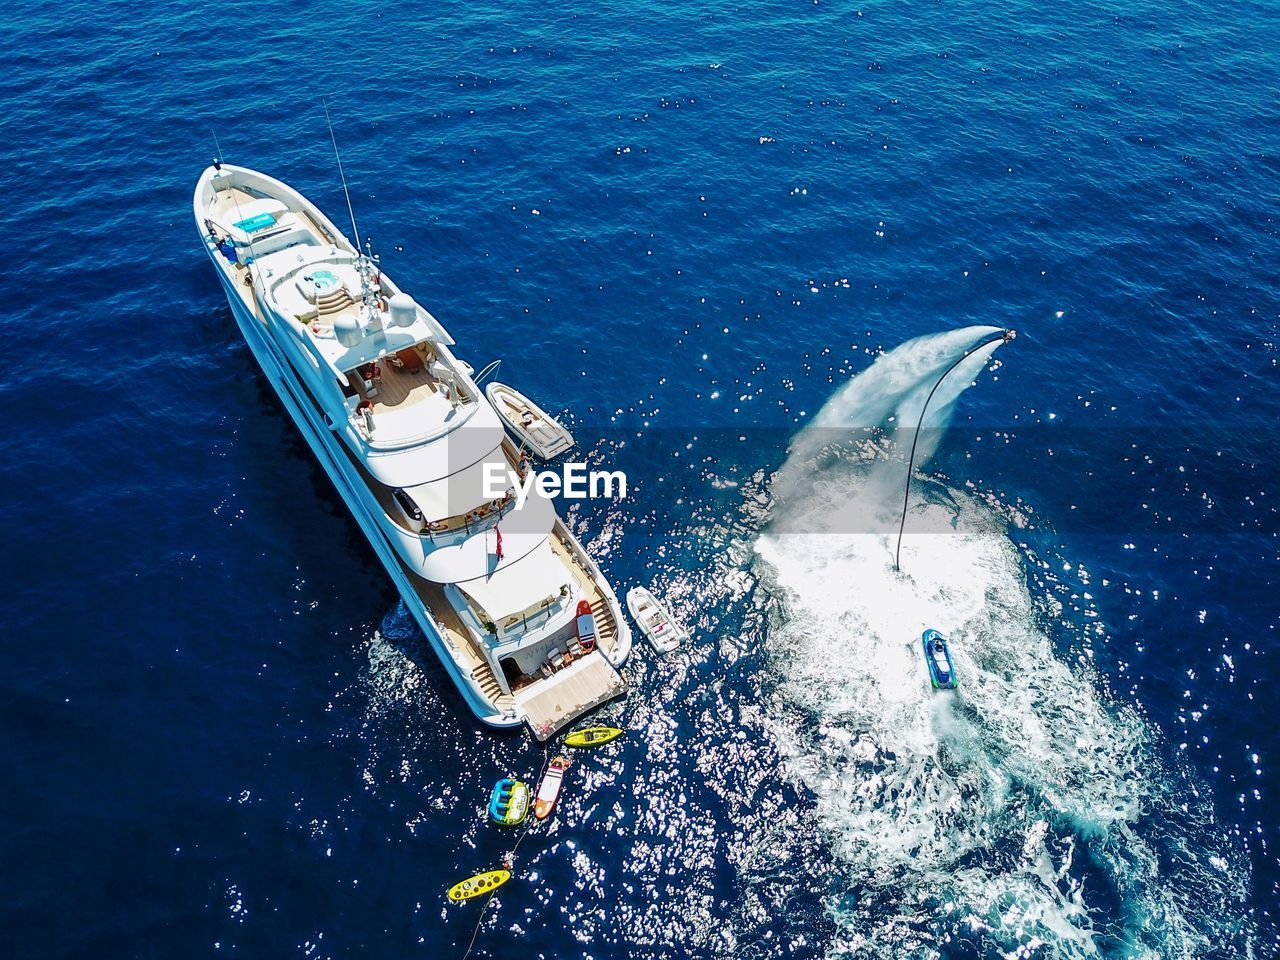 water, sea, nautical vessel, high angle view, nature, day, transportation, underwater, outdoors, animals in the wild, animal wildlife, mode of transportation, no people, motion, blue, animal, sport, sea life, travel, marine